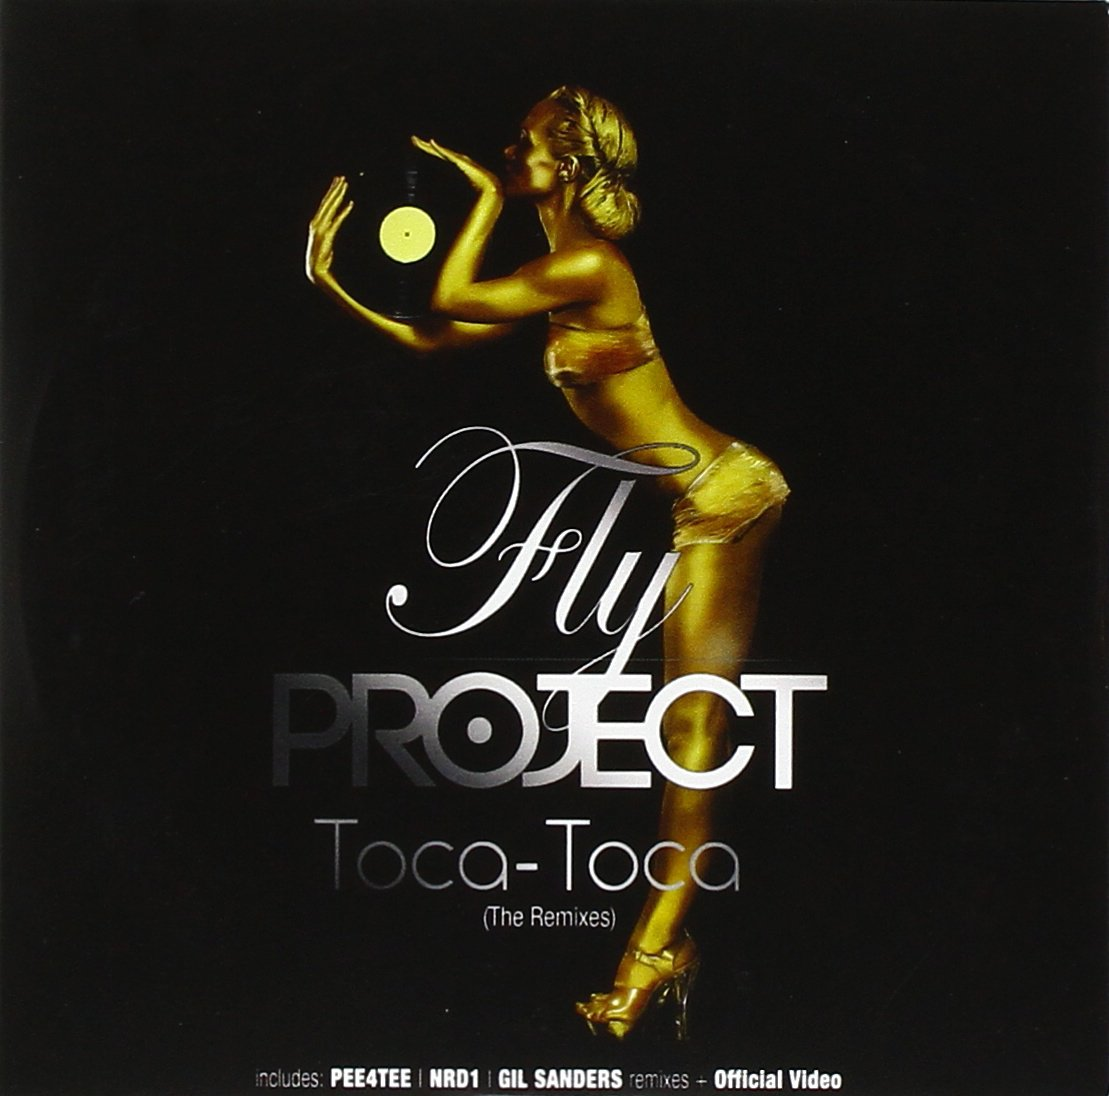 Fly Project Toca Toca Cover Toca Toca Fly Project